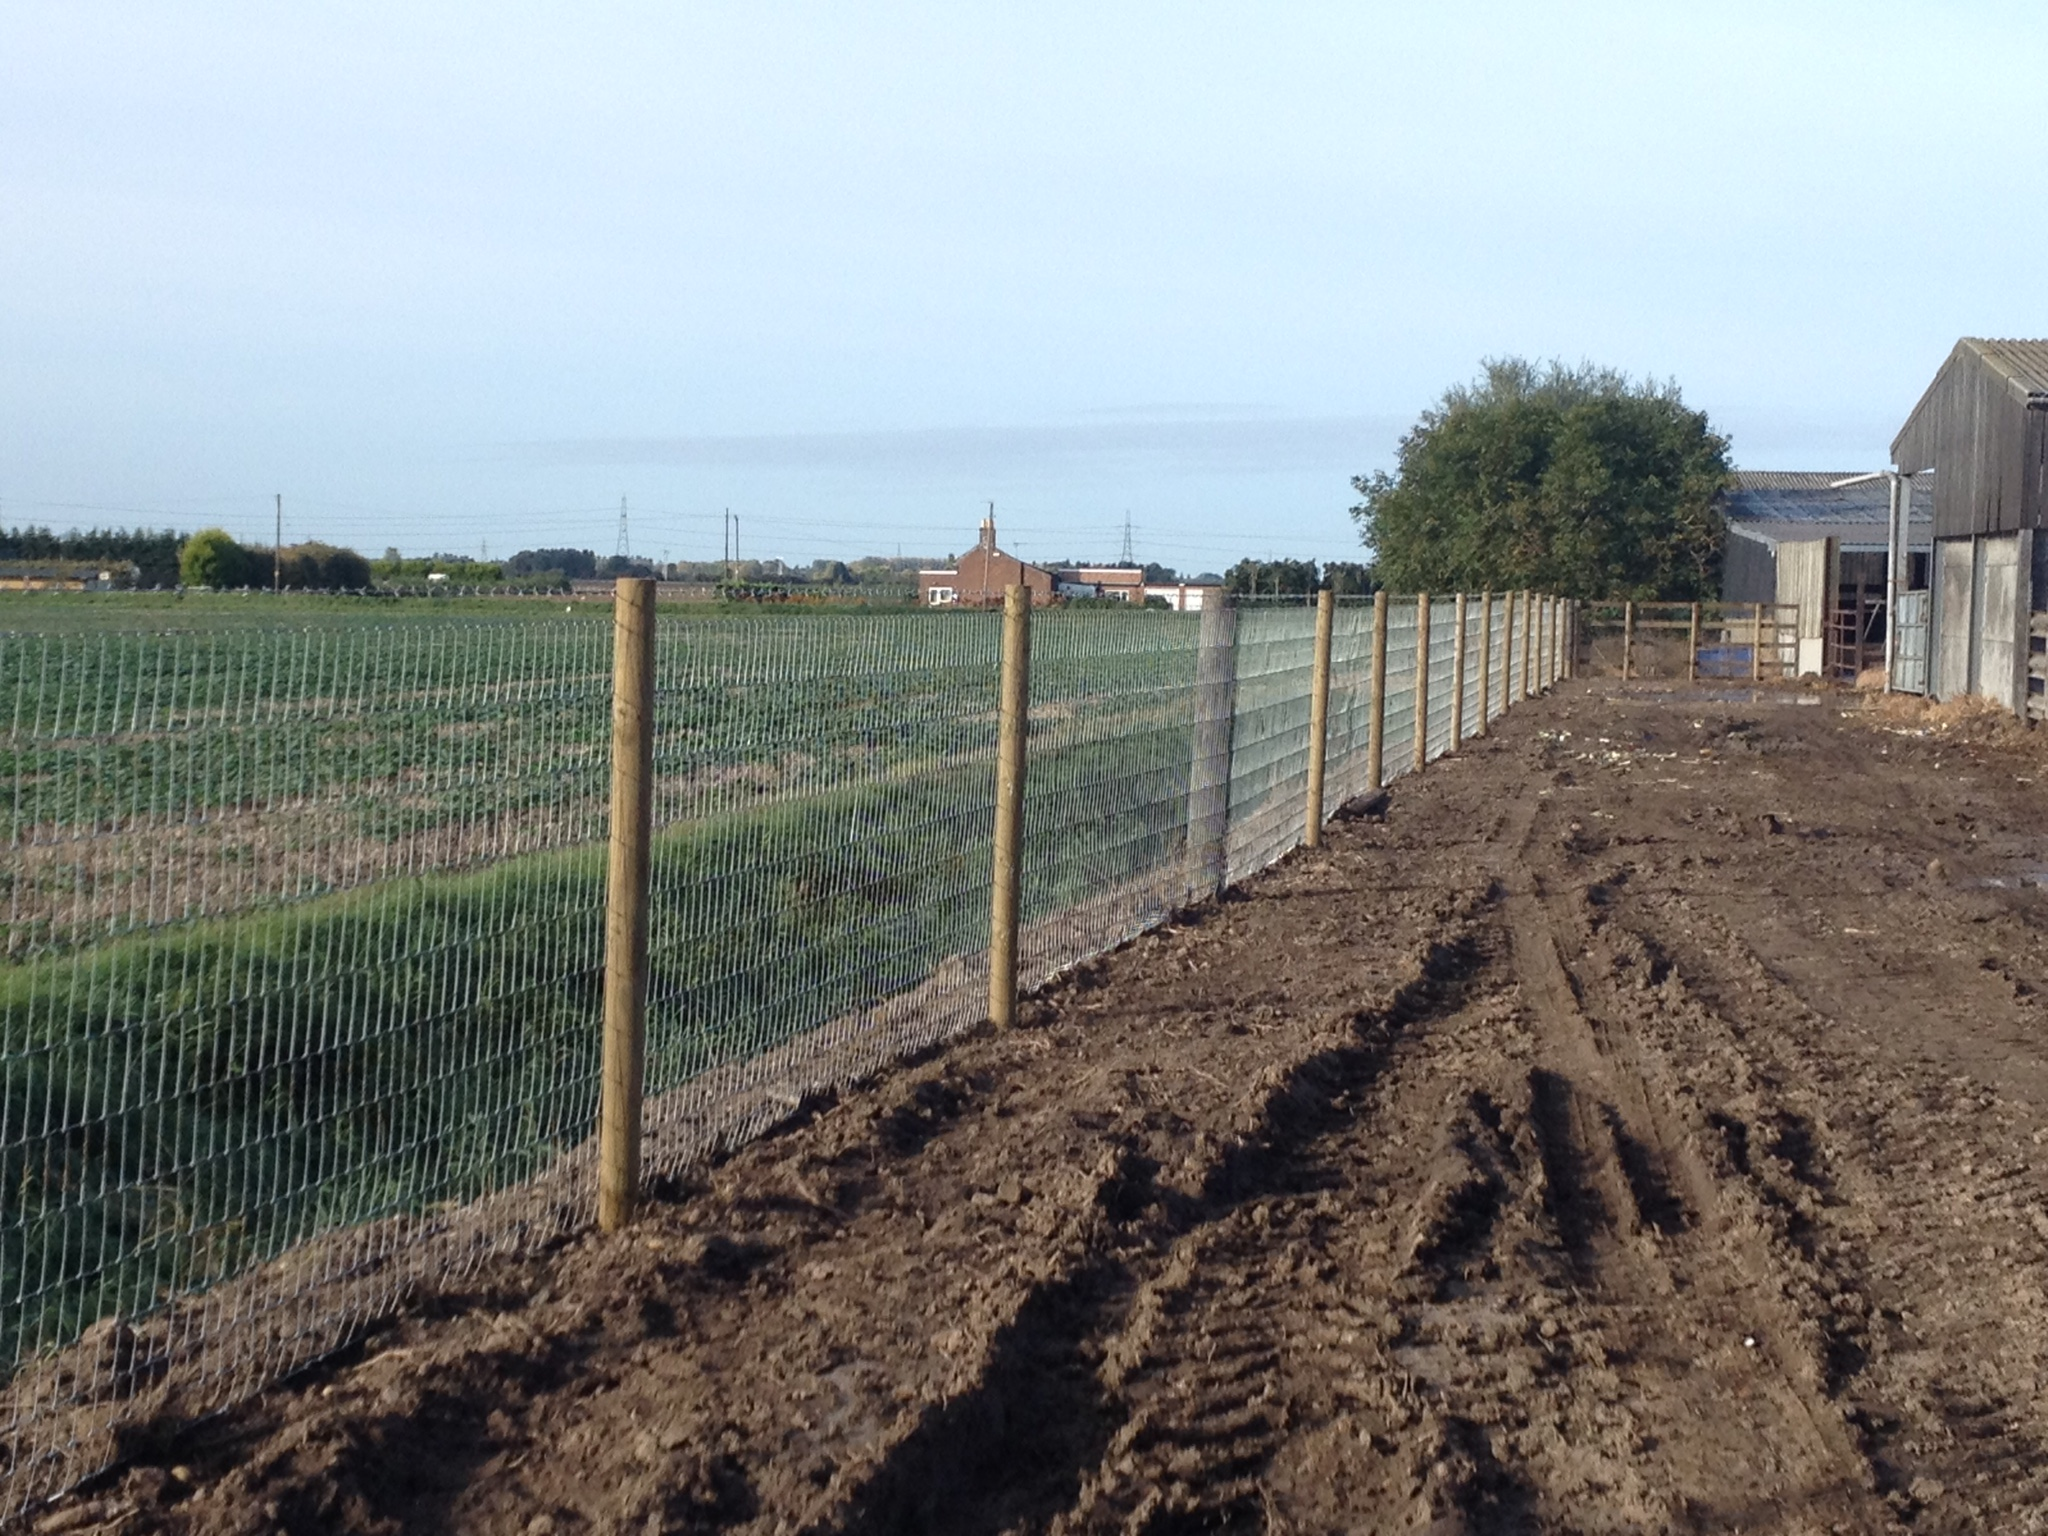 Badger and deer fencing at cattle finishing unit near Wisbech